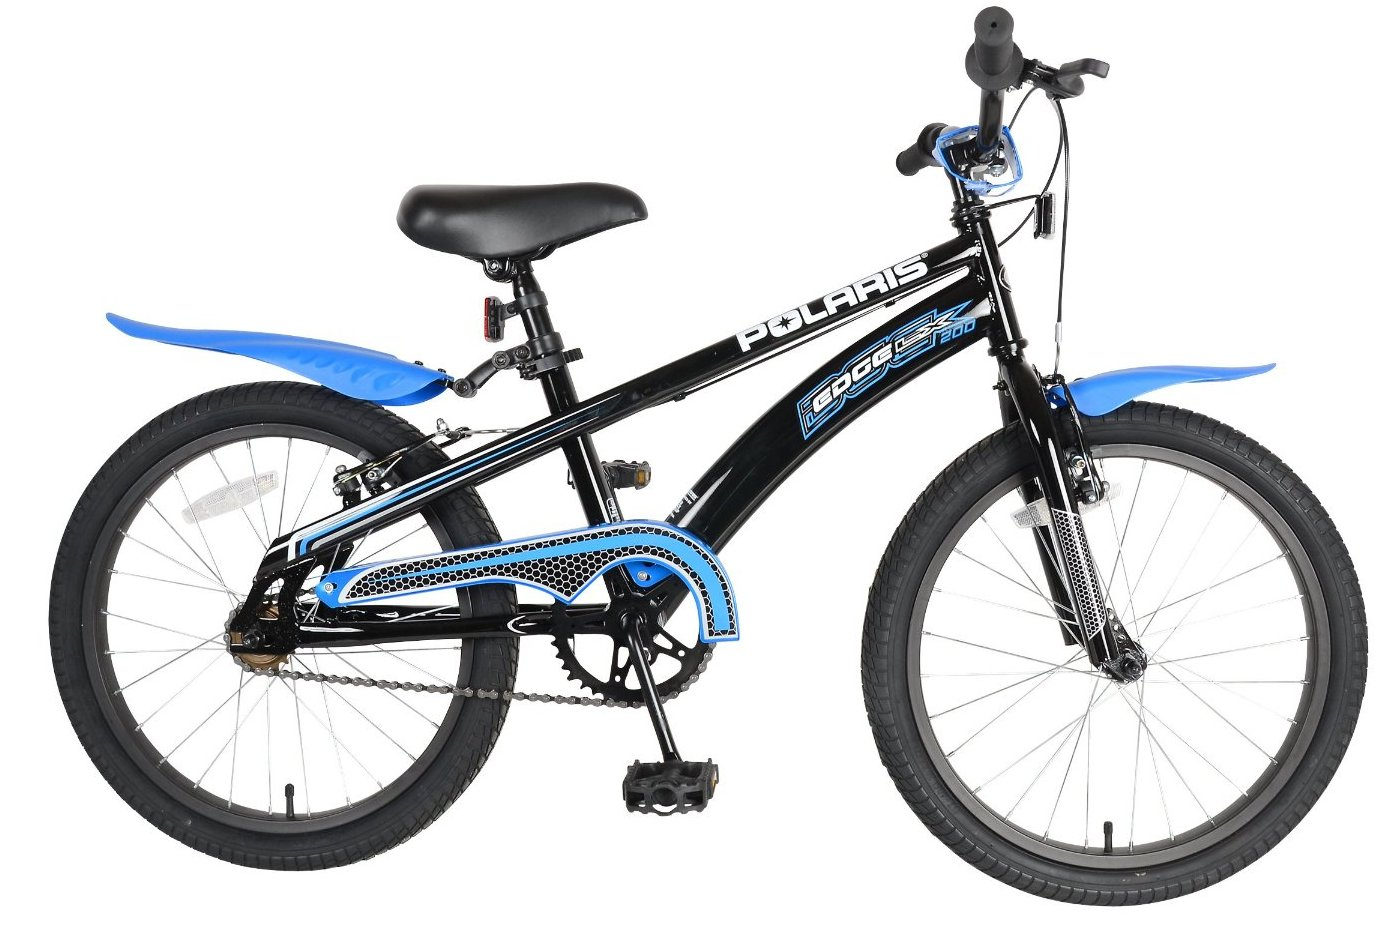 "Polaris Edge LX 200 20"" Kid's Bike"